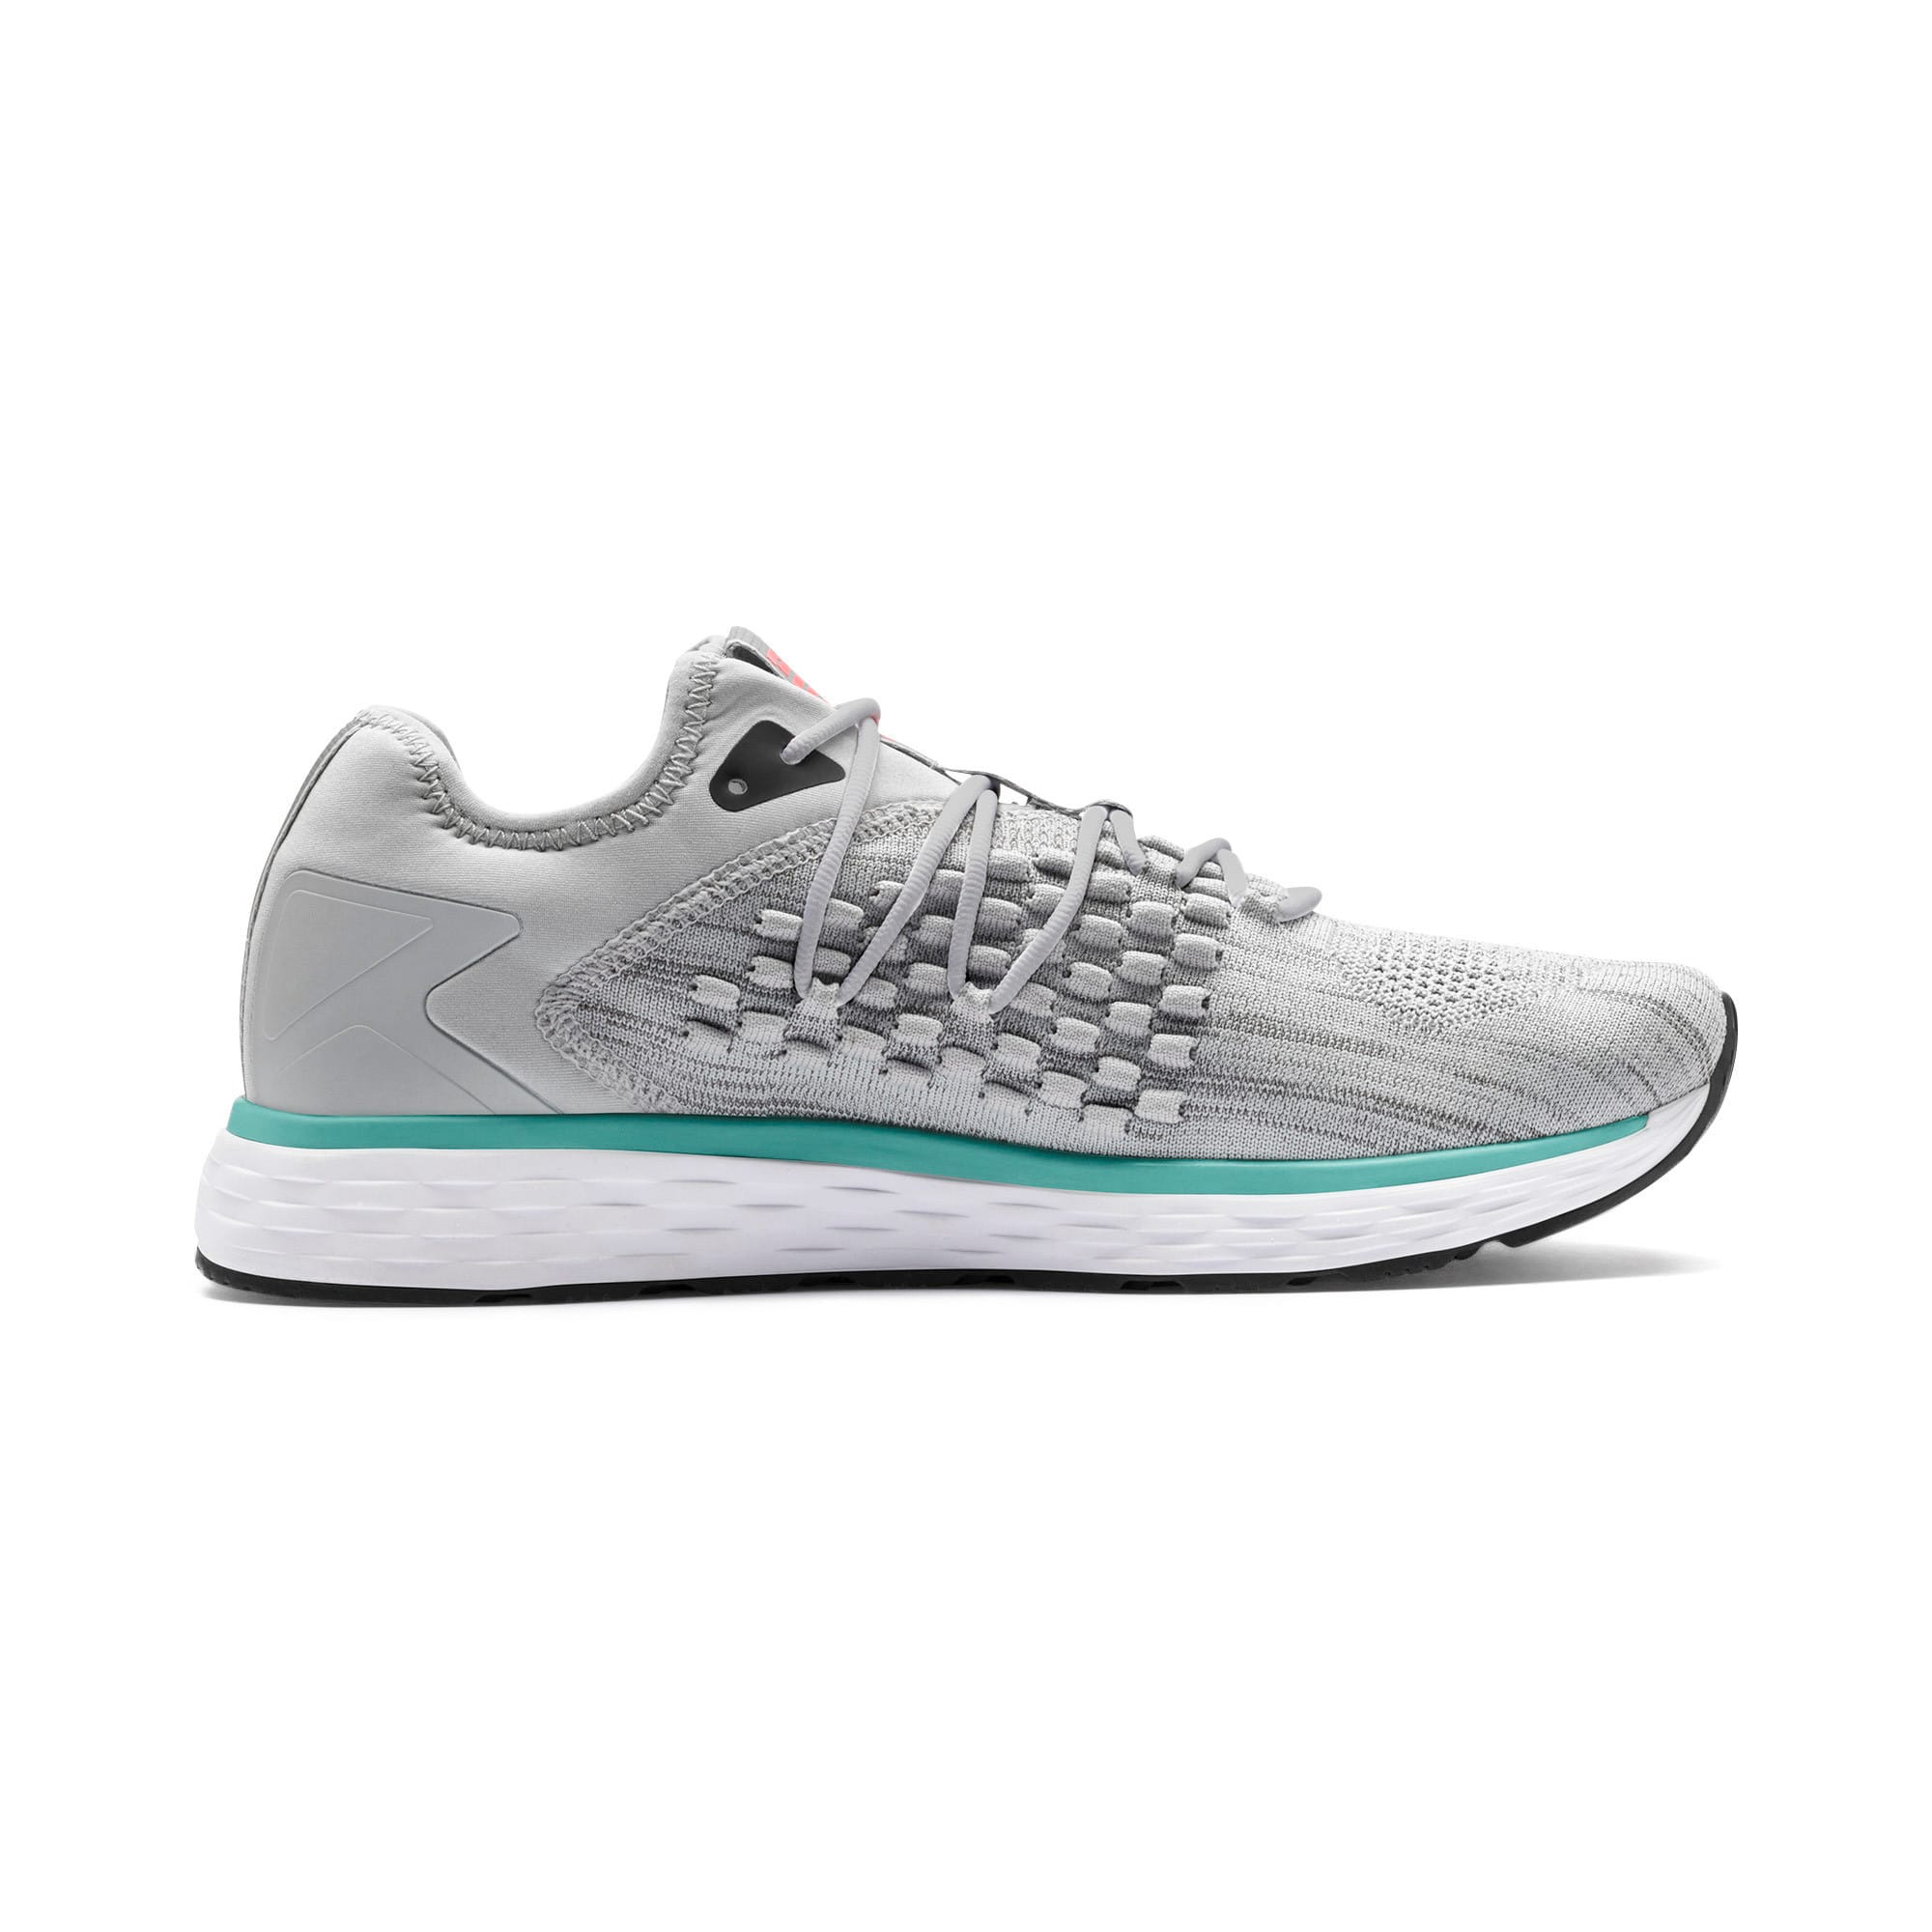 Thumbnail 6 of SPEED FUSEFIT Men's Running Shoes, High Rise-Blue Turquoise, medium